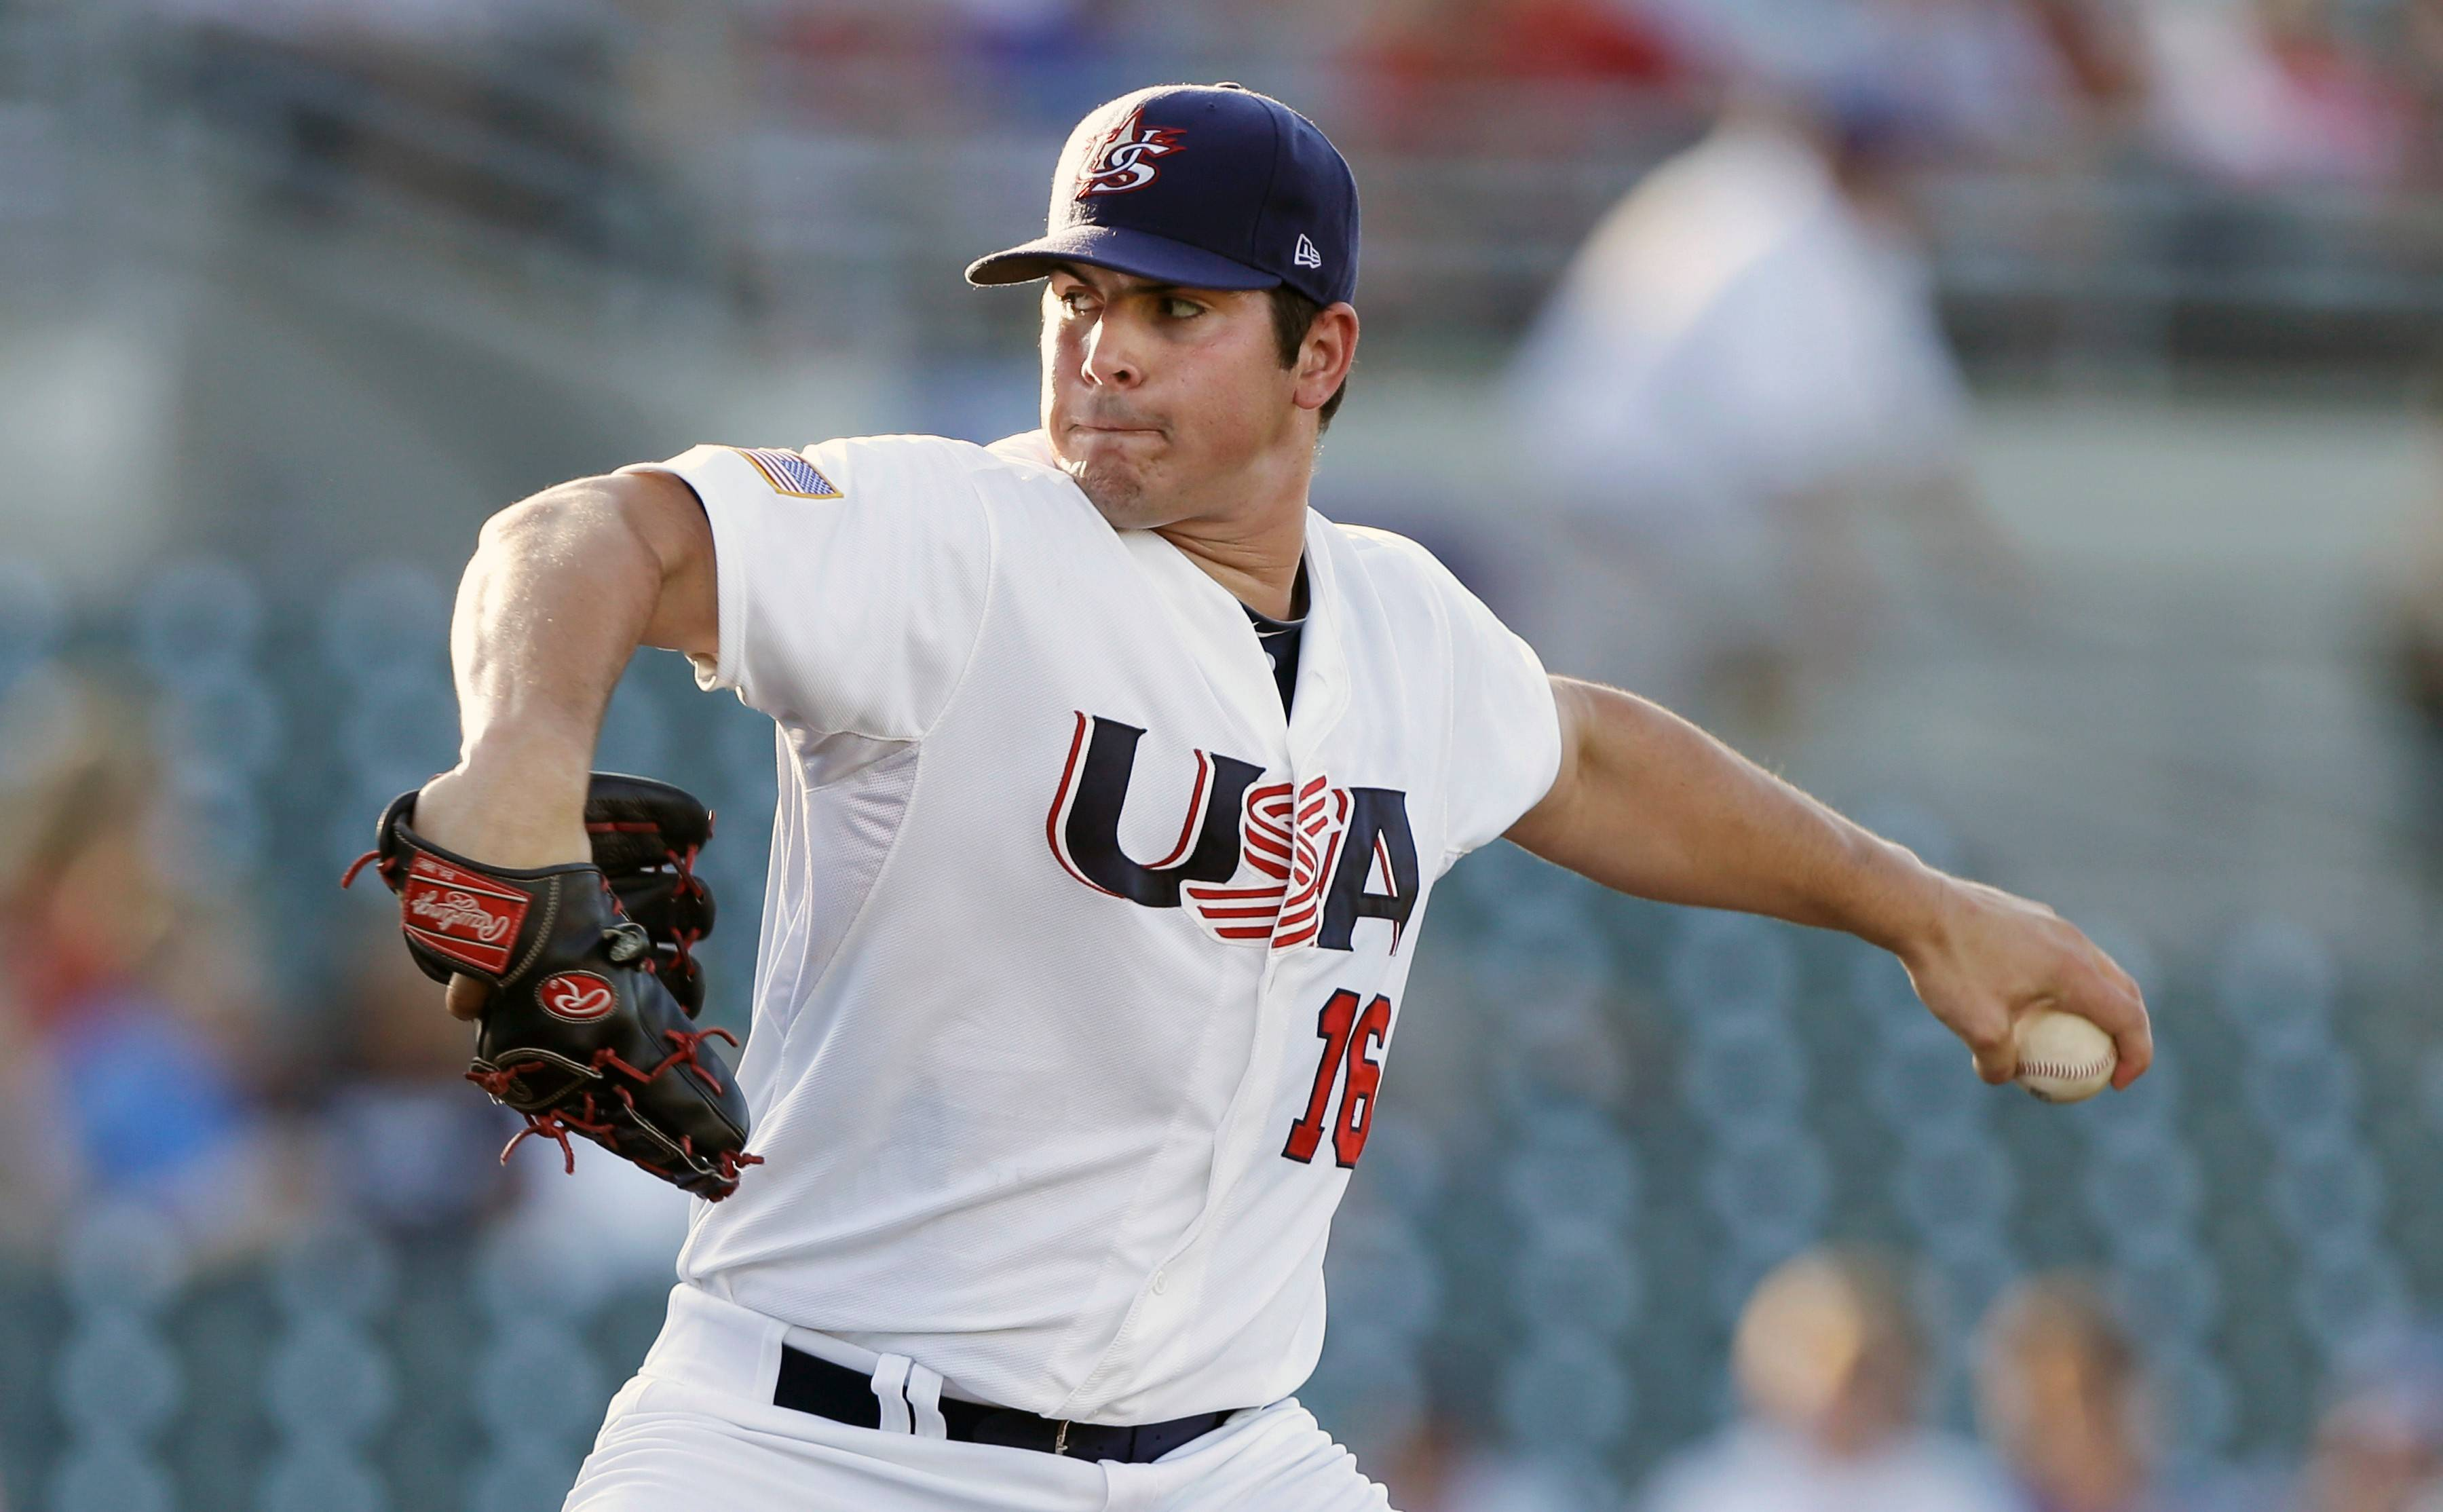 United States pitcher Carlos Rodon throws during the first inning of a 2013 exhibition game against Cuba.